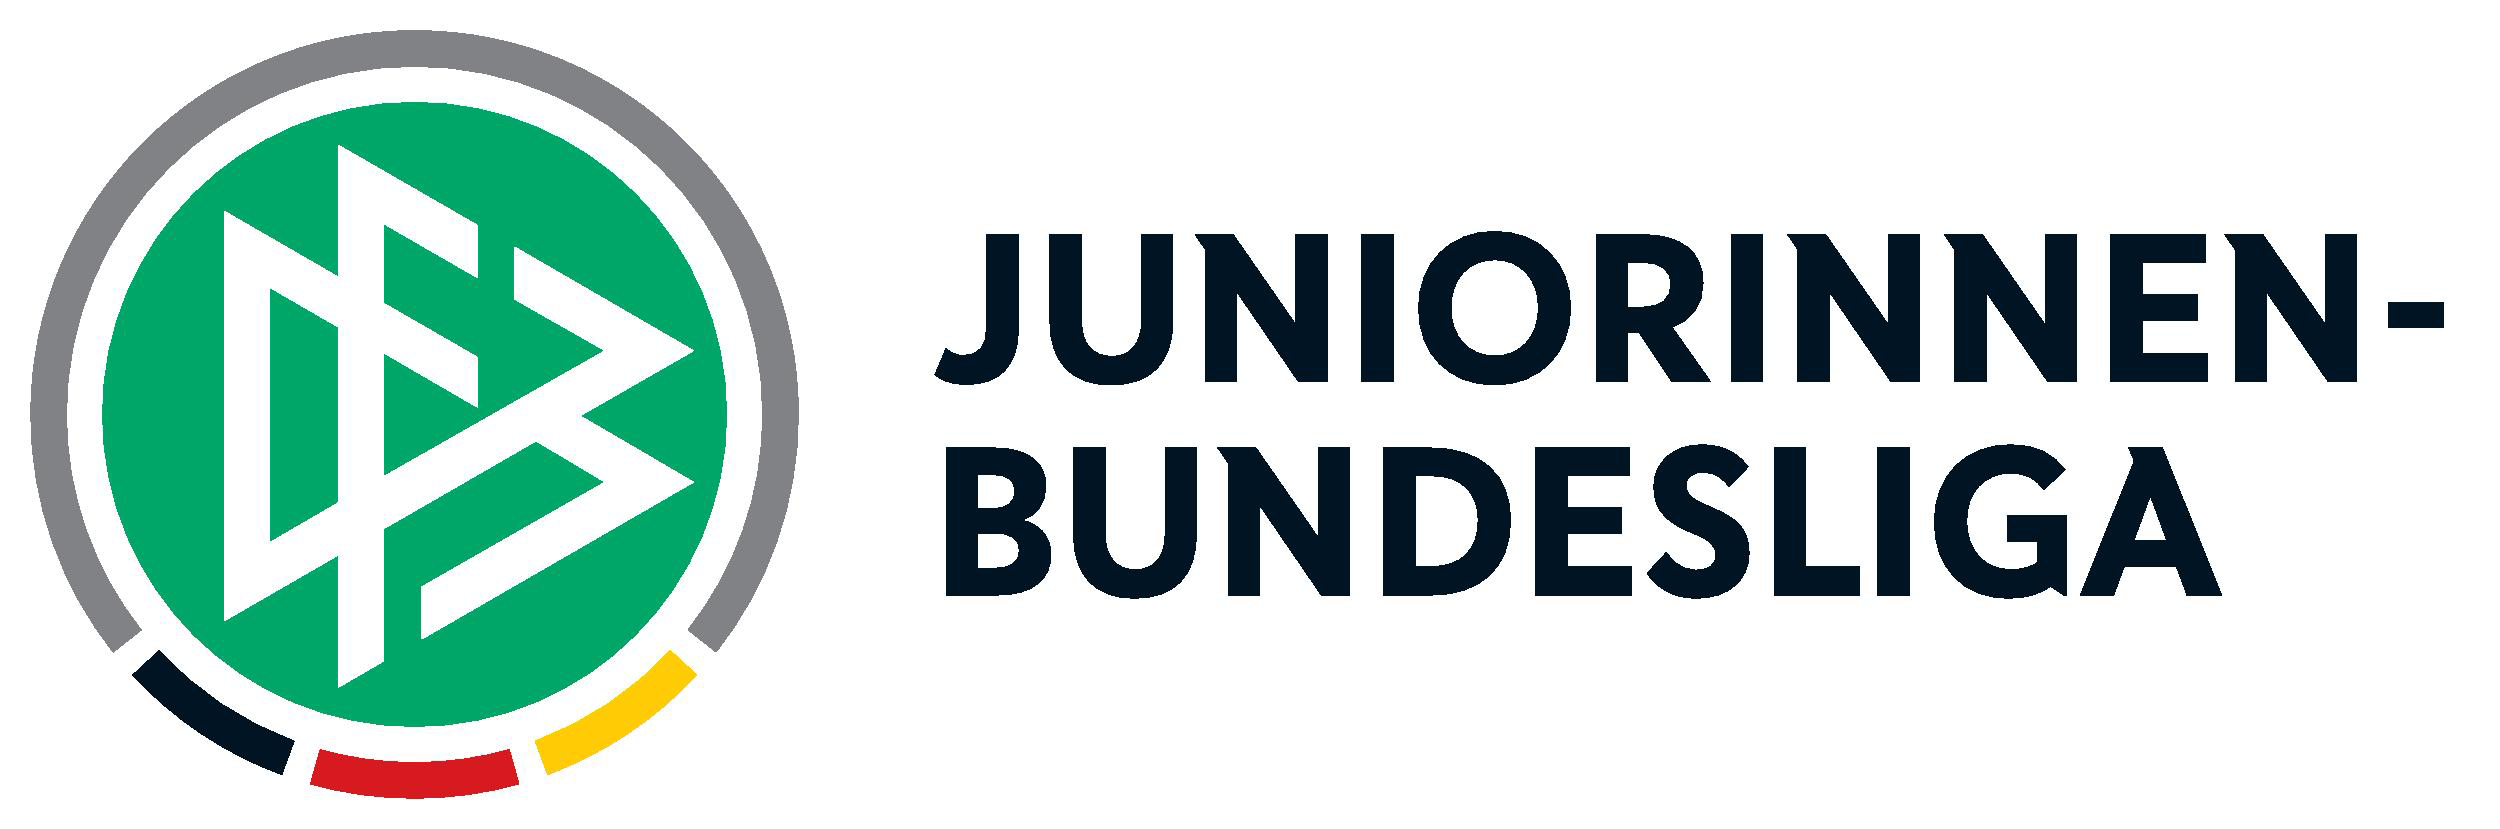 Juniorinnen-Bundesliga